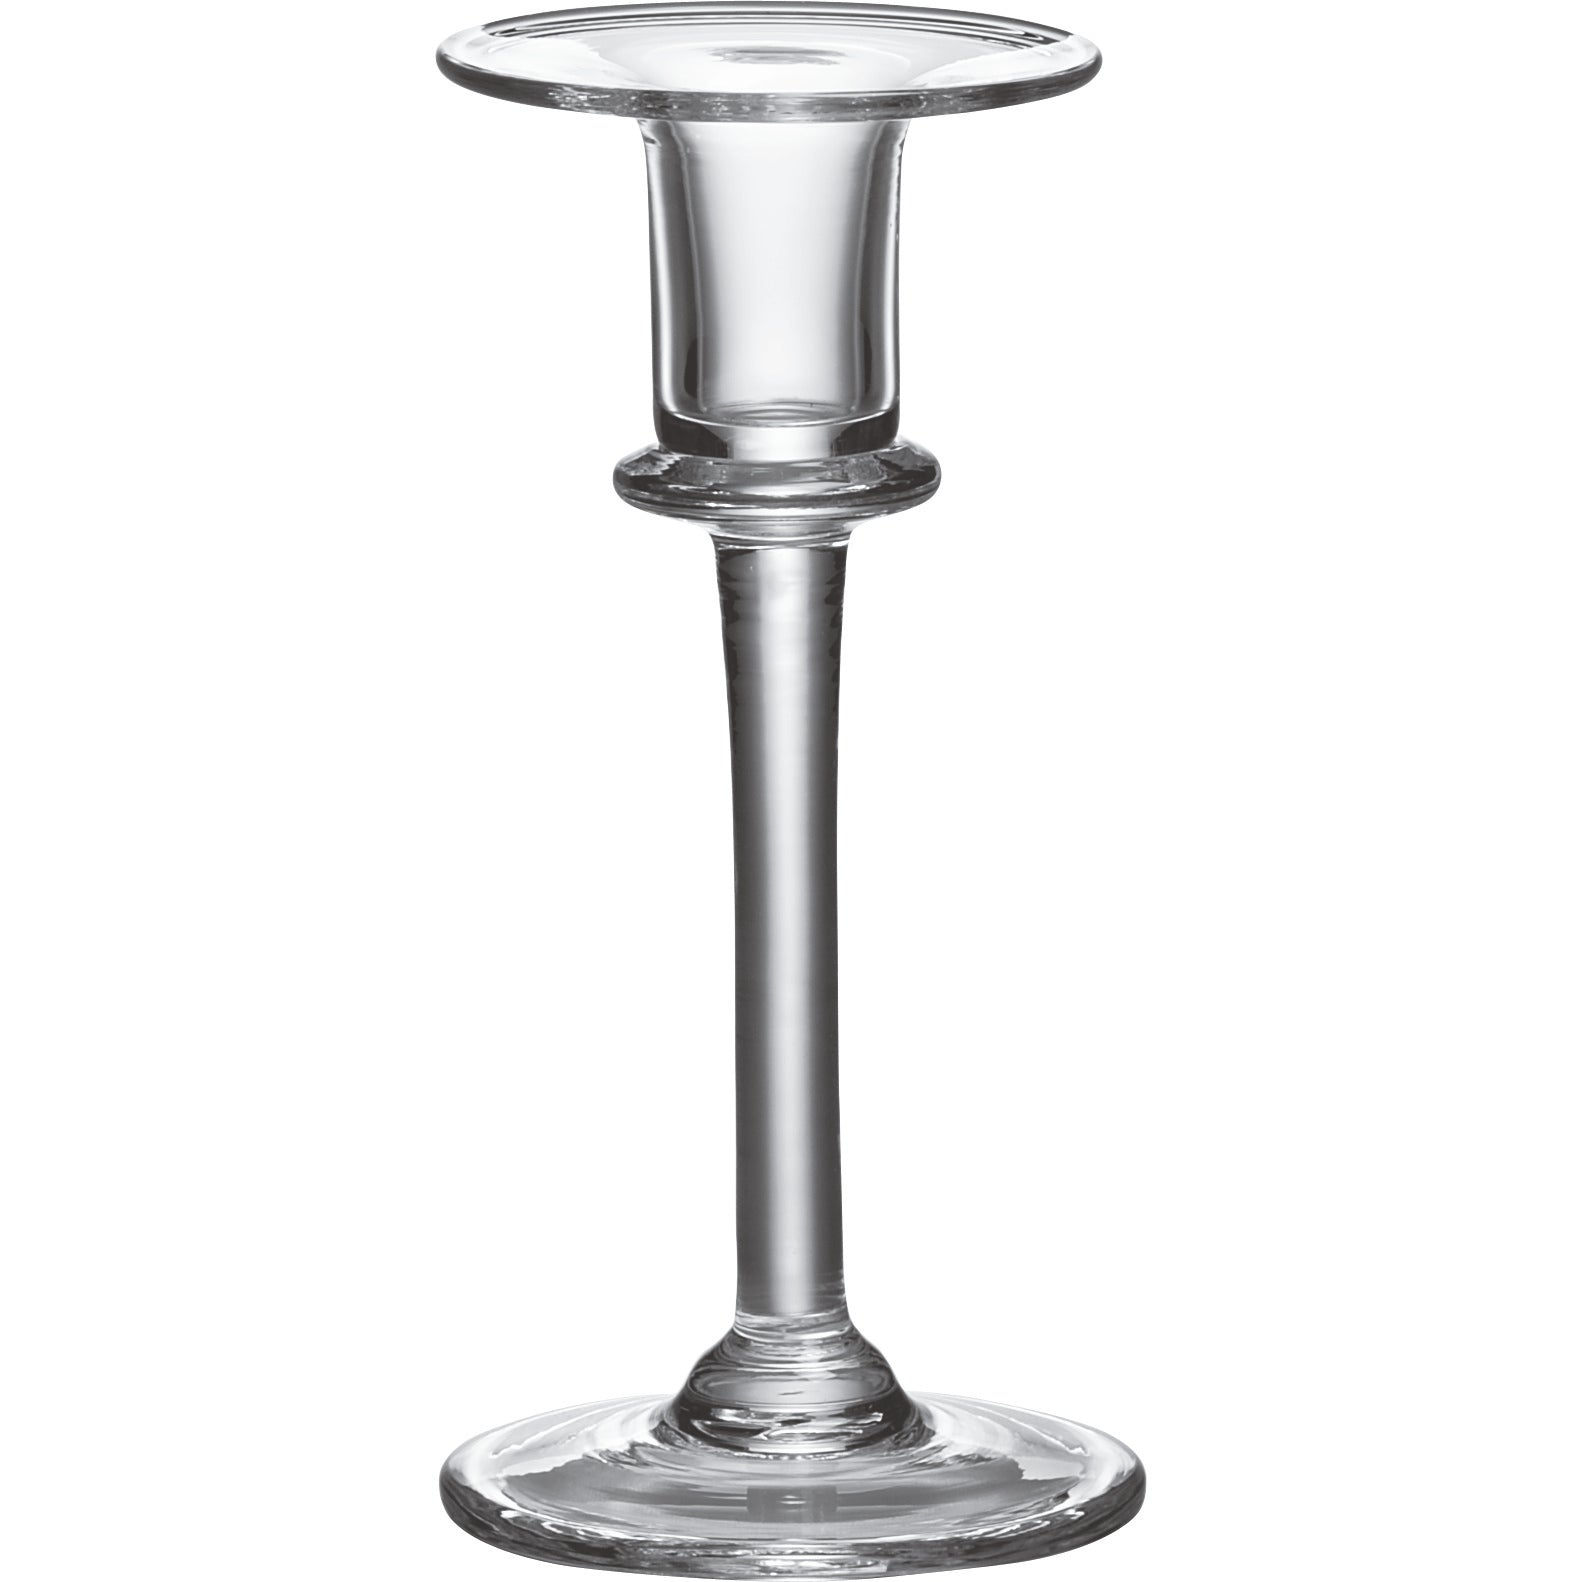 Cavendish Candlestick, Small